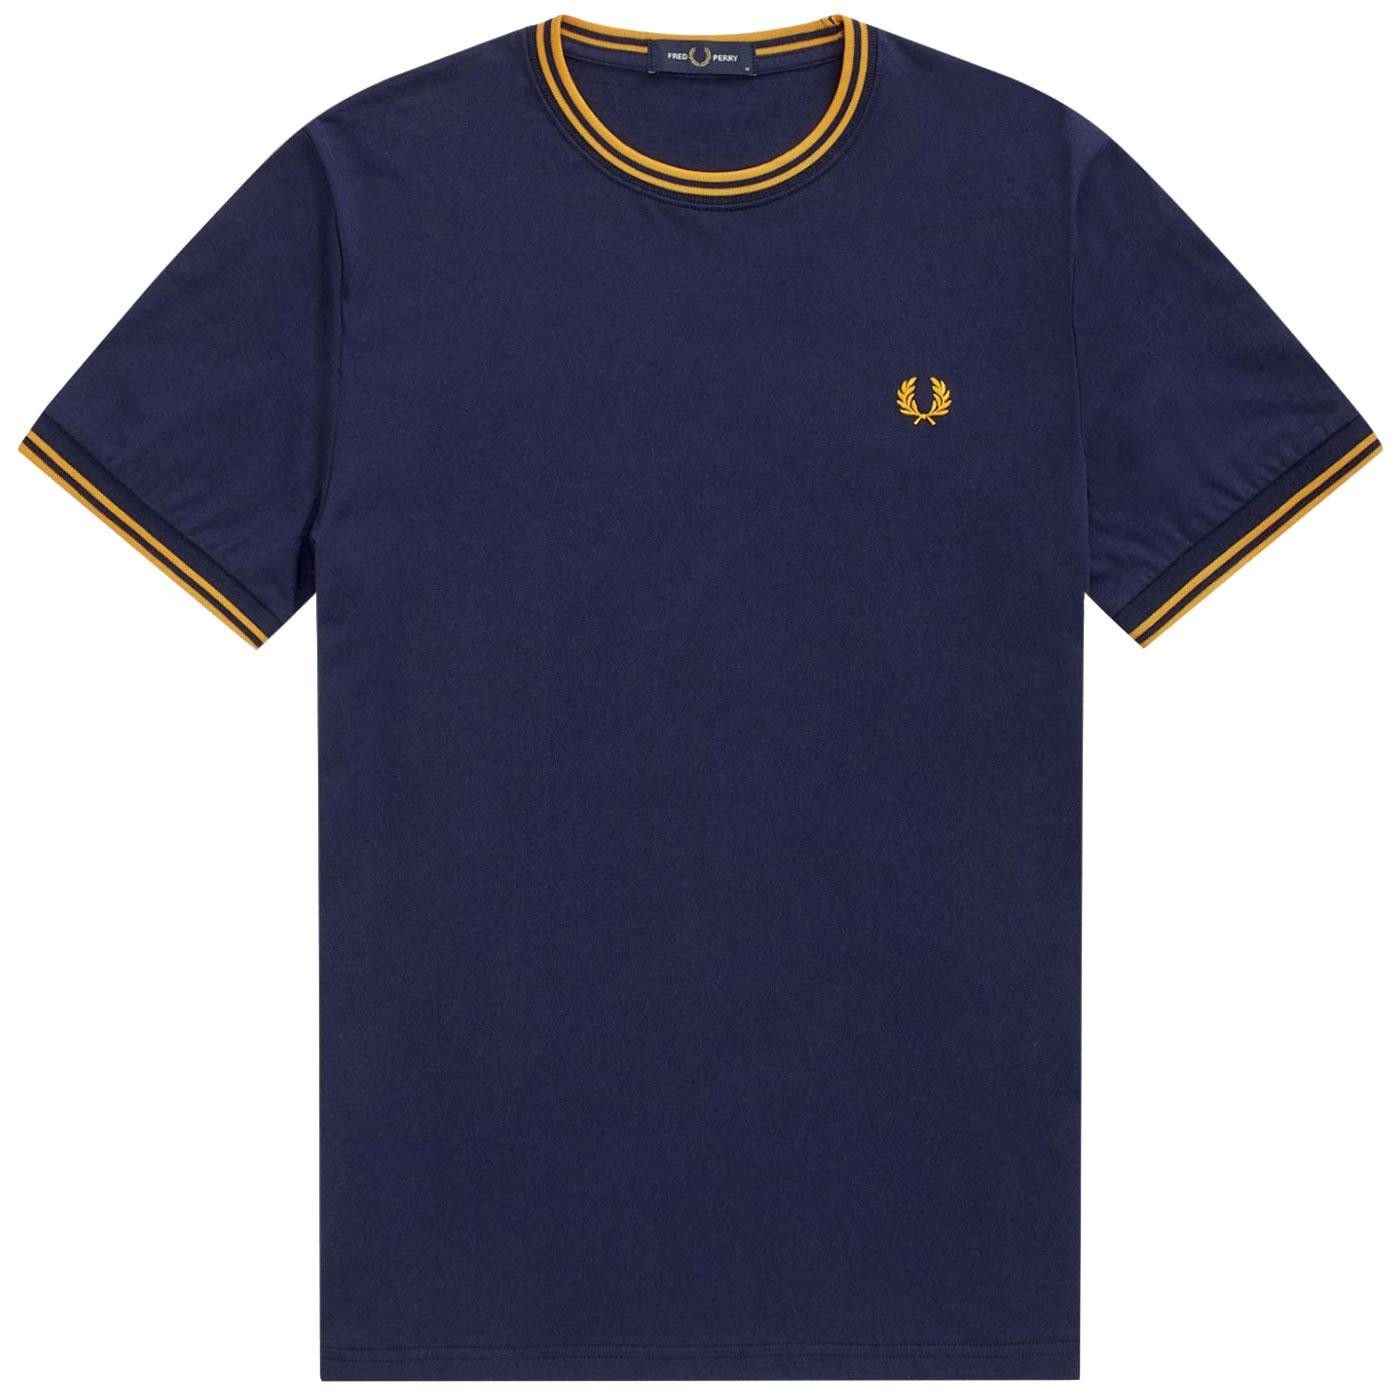 FRED PERRY M1588 Men's Twin Tipped Ringer Tee CB/Y